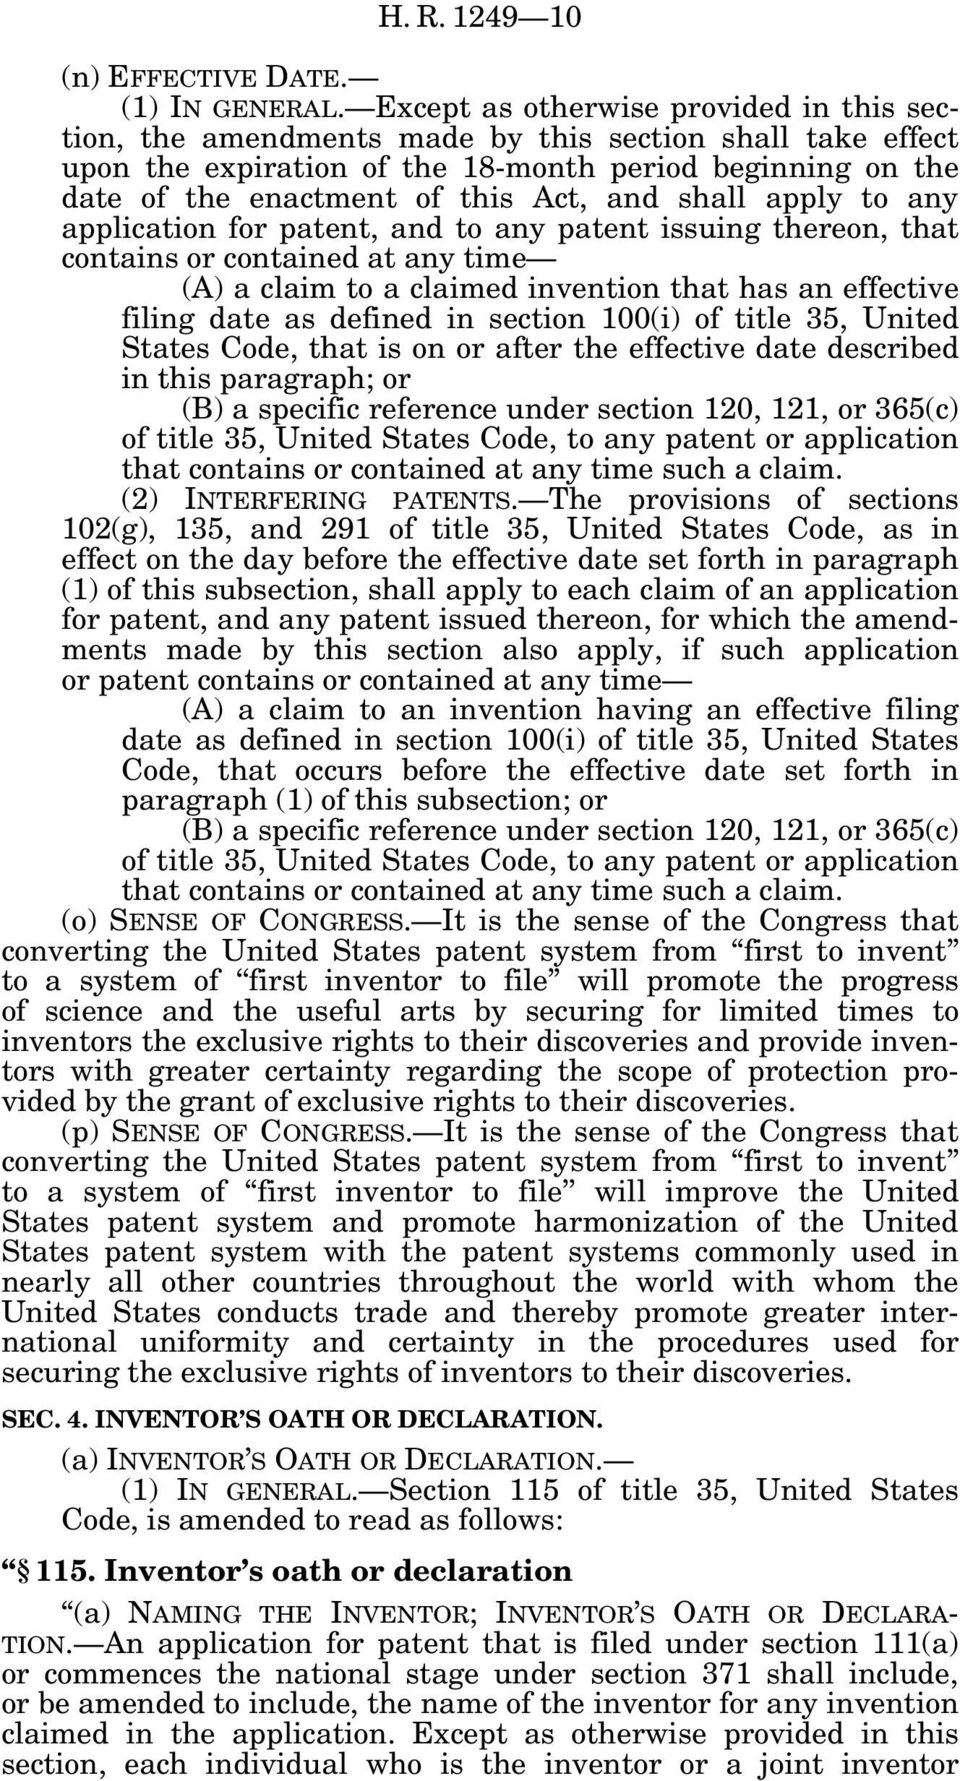 shall apply to any application for patent, and to any patent issuing thereon, that contains or contained at any time (A) a claim to a claimed invention that has an effective filing date as defined in